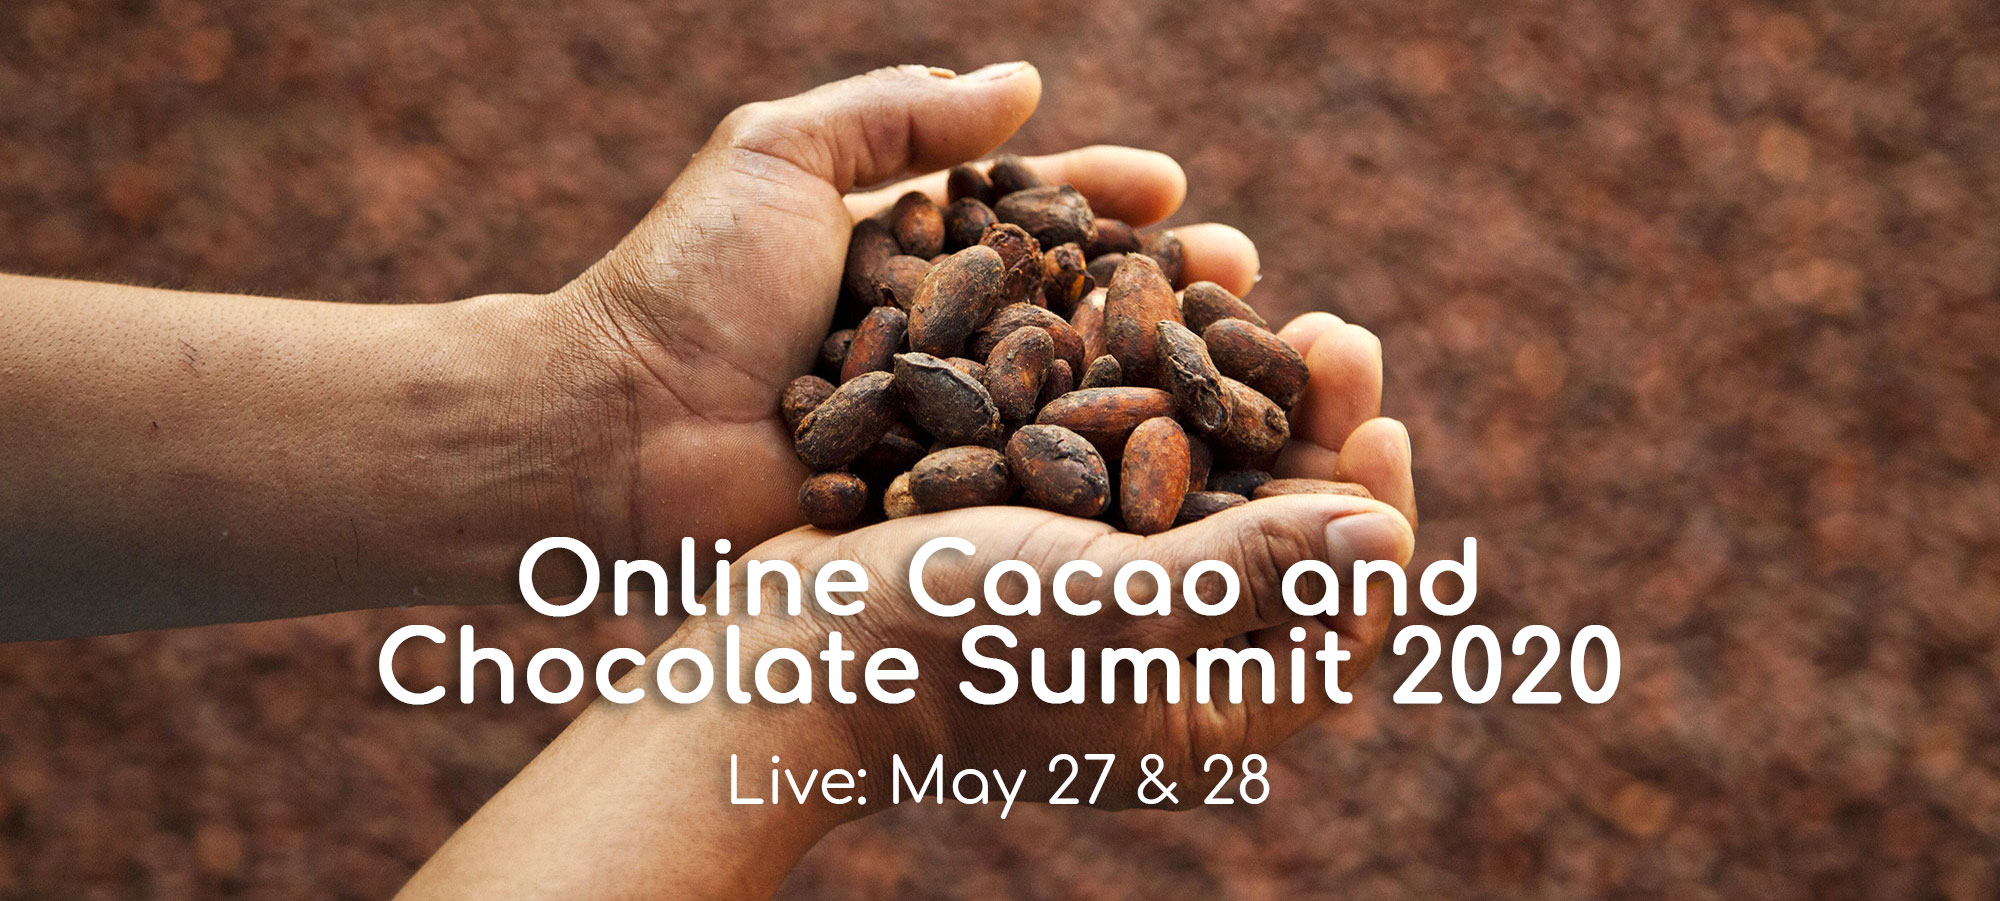 Cacao and Chocolate Summit 2020 Continues – Online, For Now